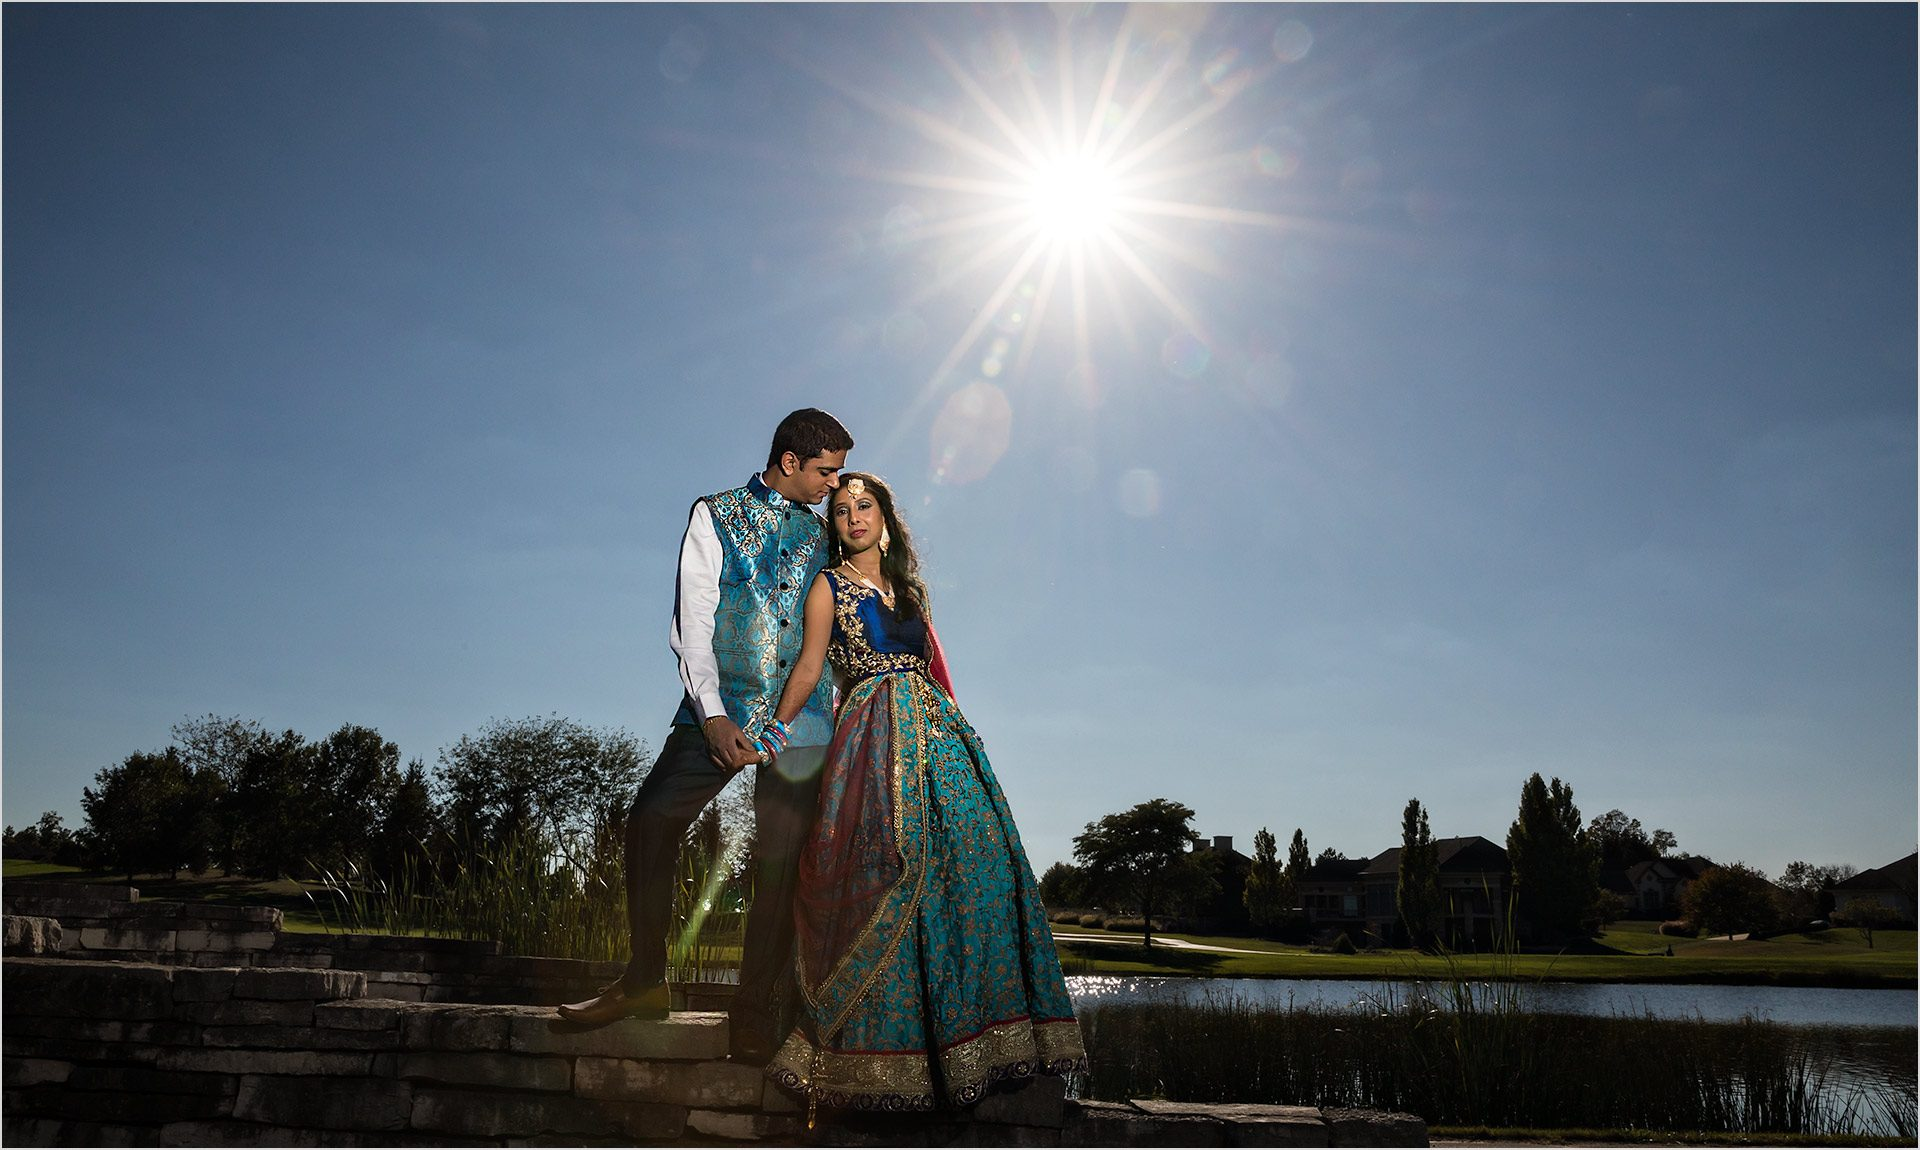 Maxim photo studio cincinnati dayton wedding photographer dayton wedding photographers indian wedding sunburst country club north junglespirit Choice Image